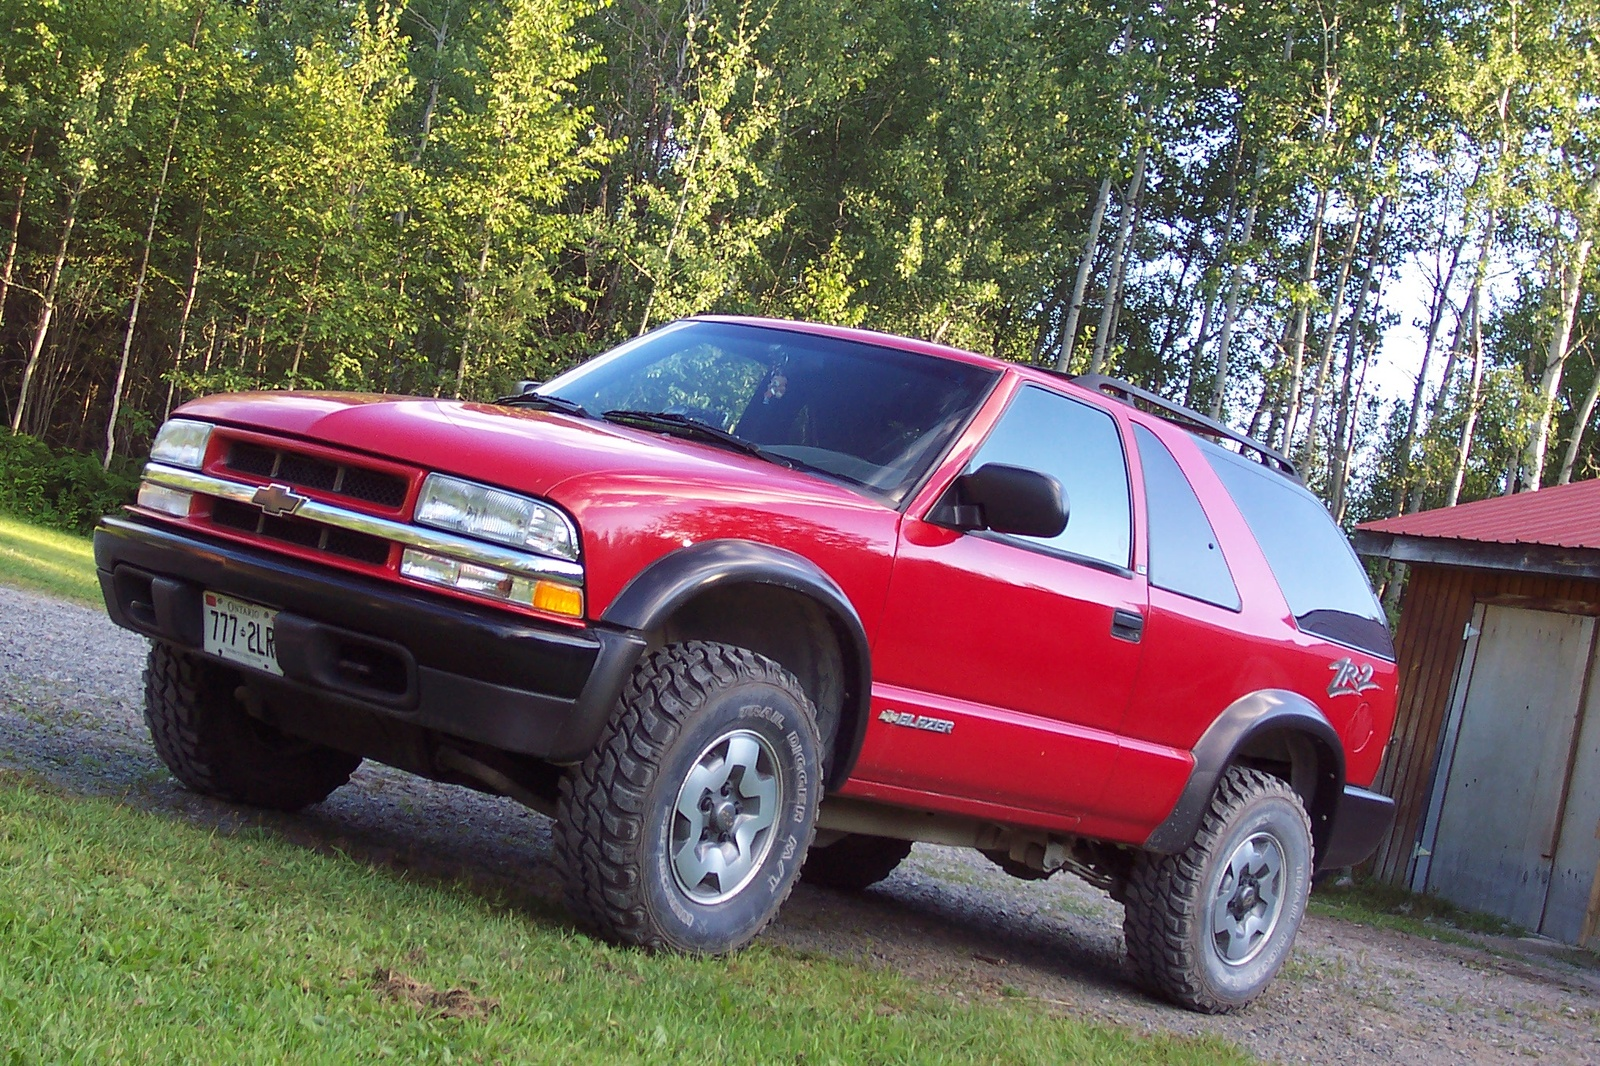 Picture of 2003 Chevrolet Blazer 2 Dr LS ZR2 SUV